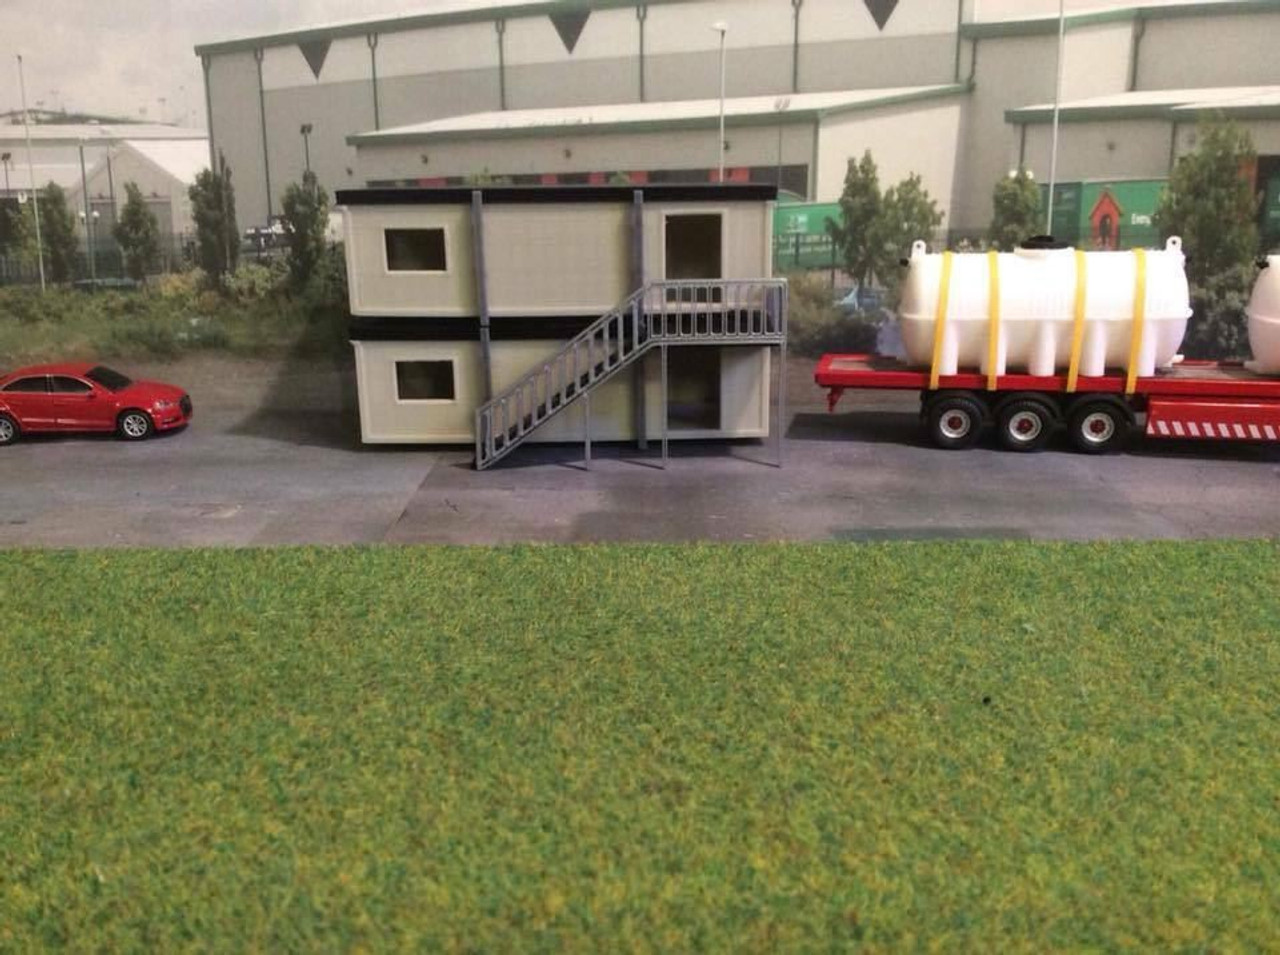 1/76 00 gauge S.R portable site office (double stack upgrade kit ONLY)